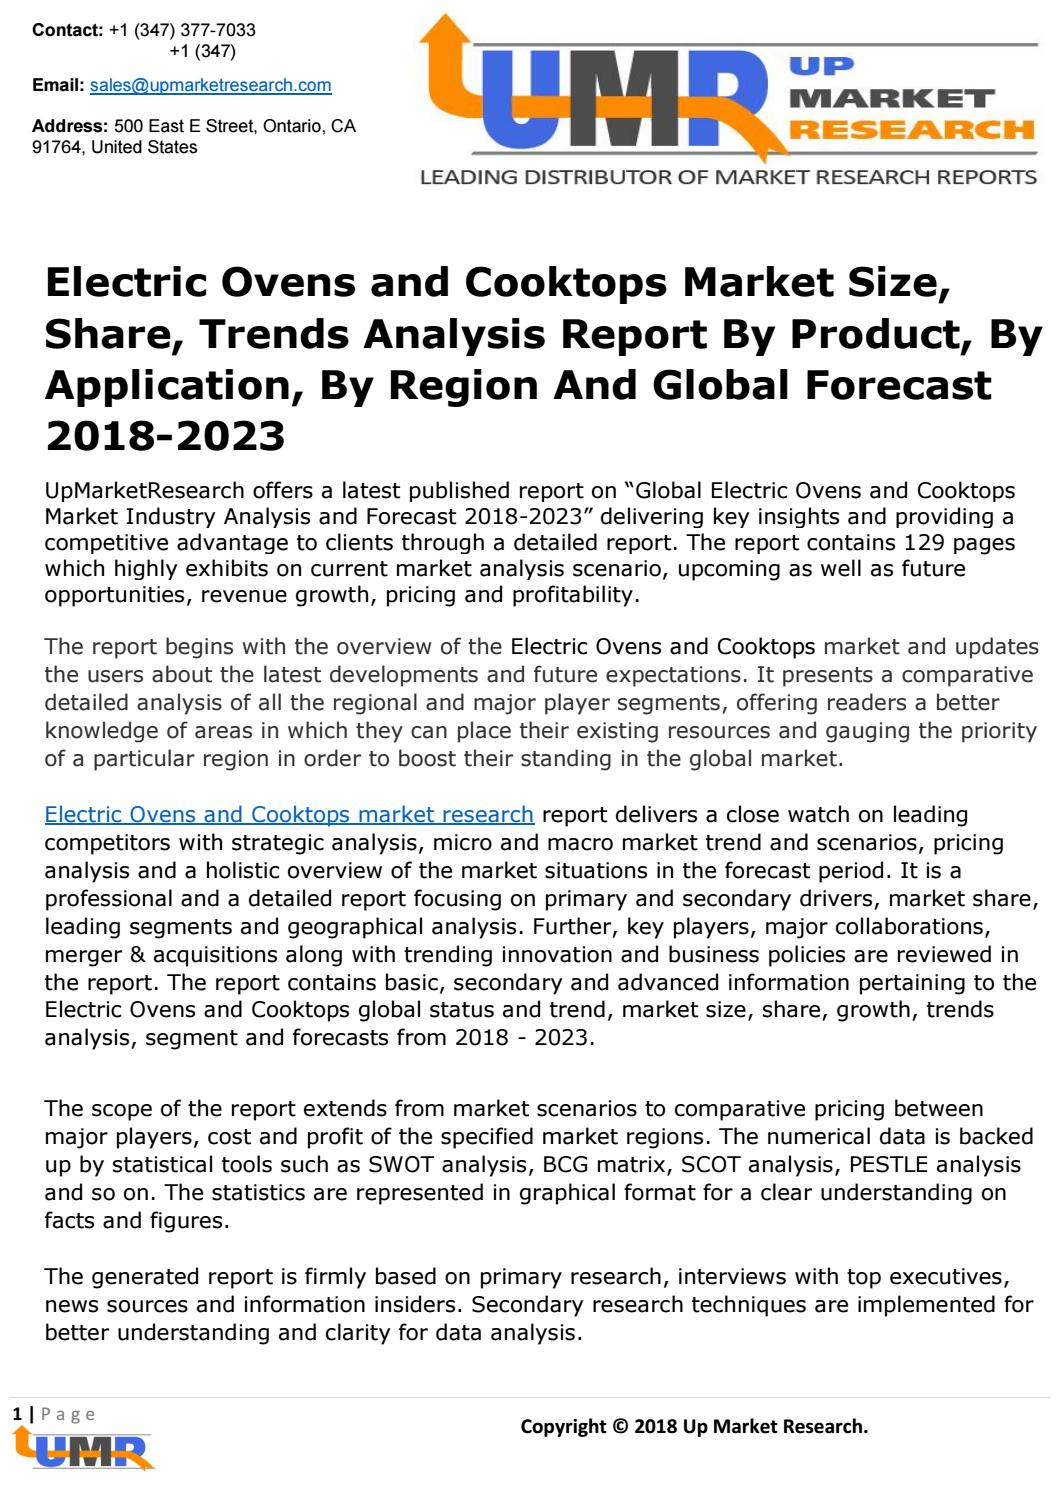 Electric Ovens And Cooktops Market Size